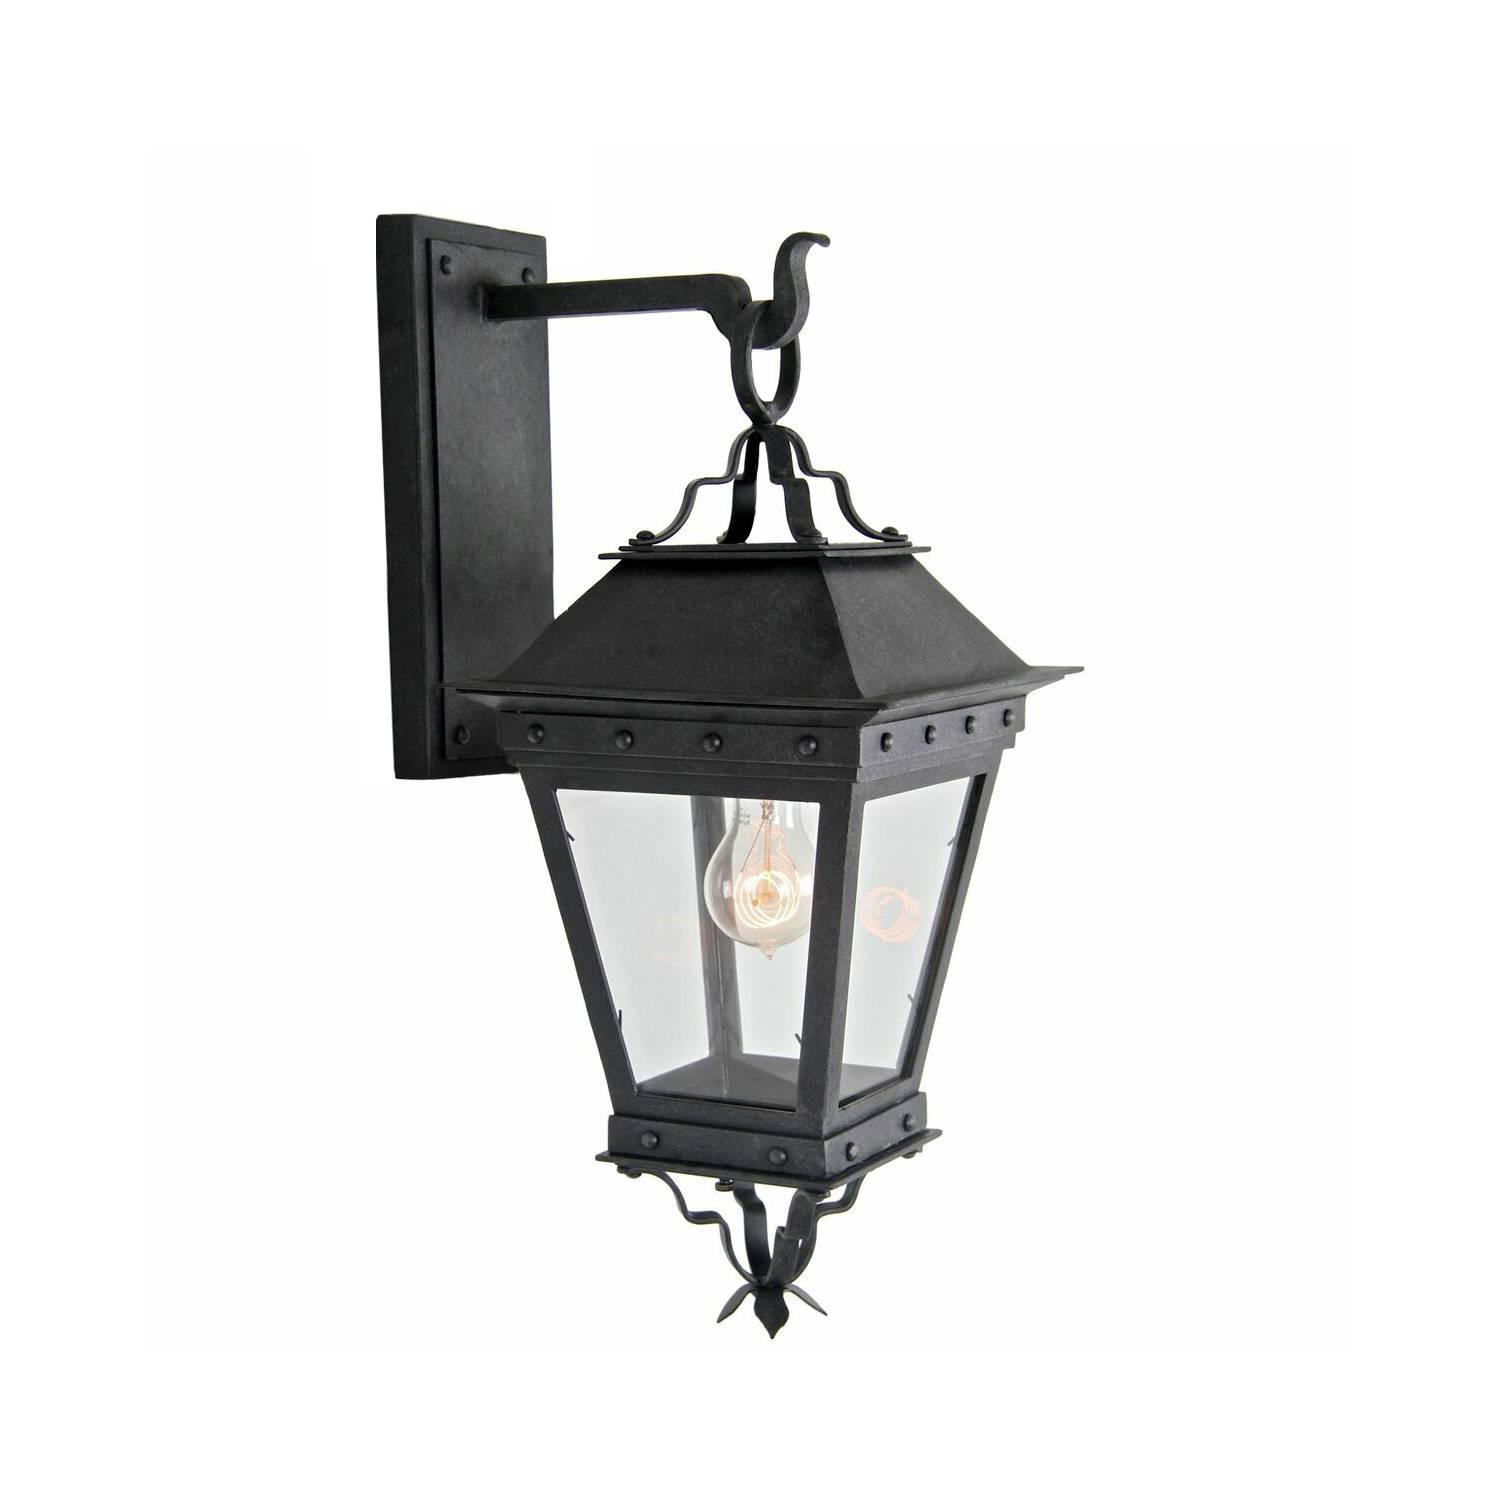 New Spanish Wrought Iron Exterior Arm Mount Wall Lantern by Britt Jewett For Sale at 1stdibs